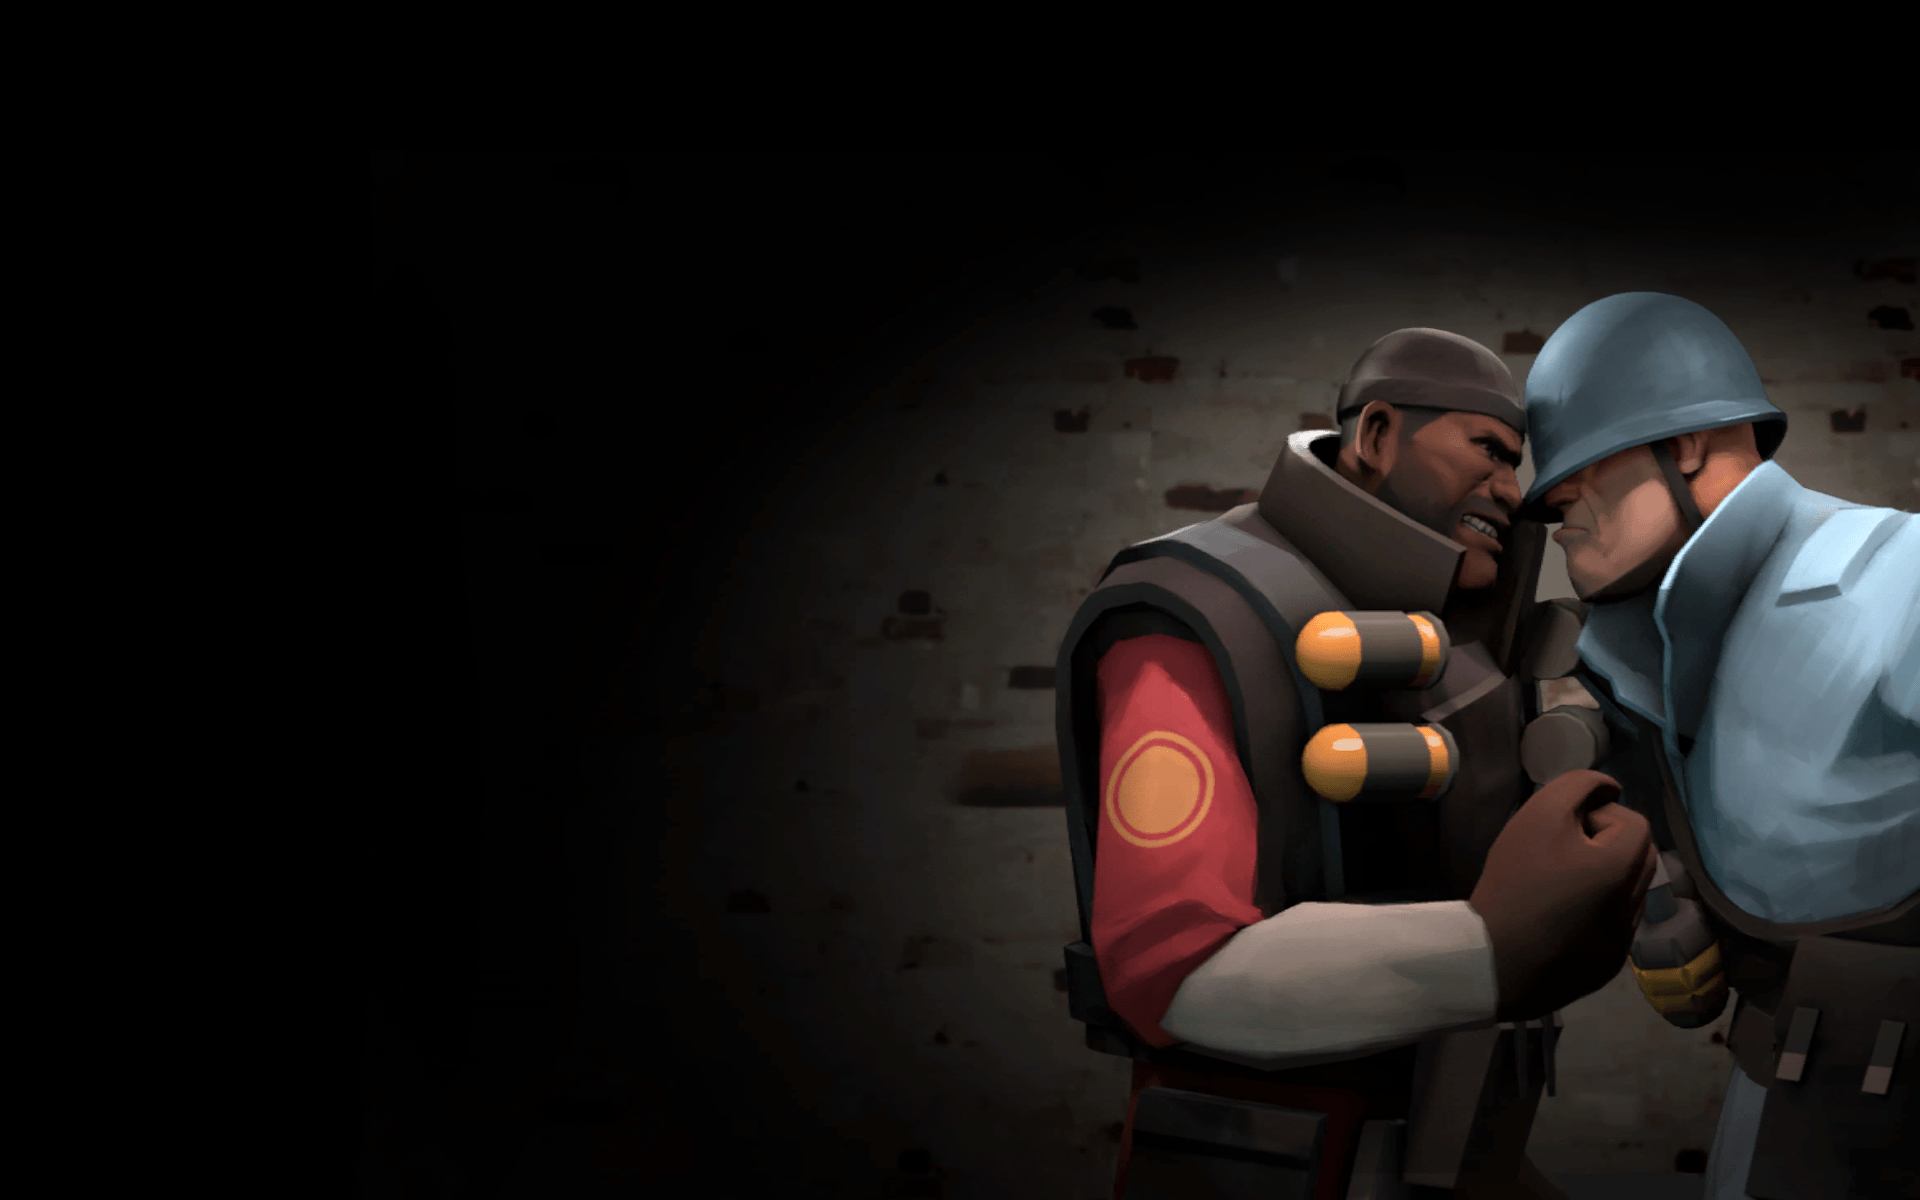 Image For > Team Fortress 2 Wallpapers Hd 1920x1080